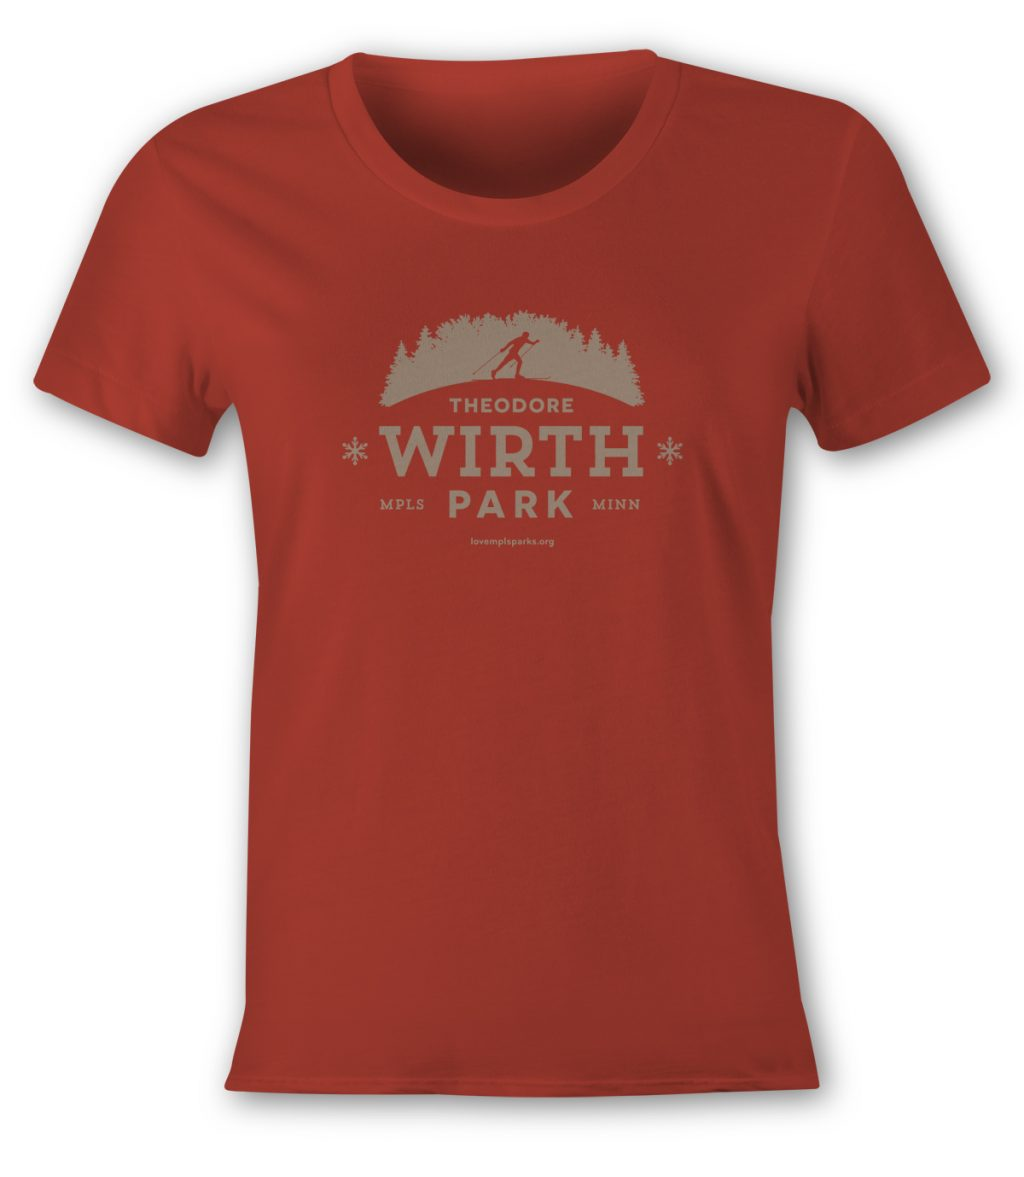 Wirth Park Women's T-Shirt in red